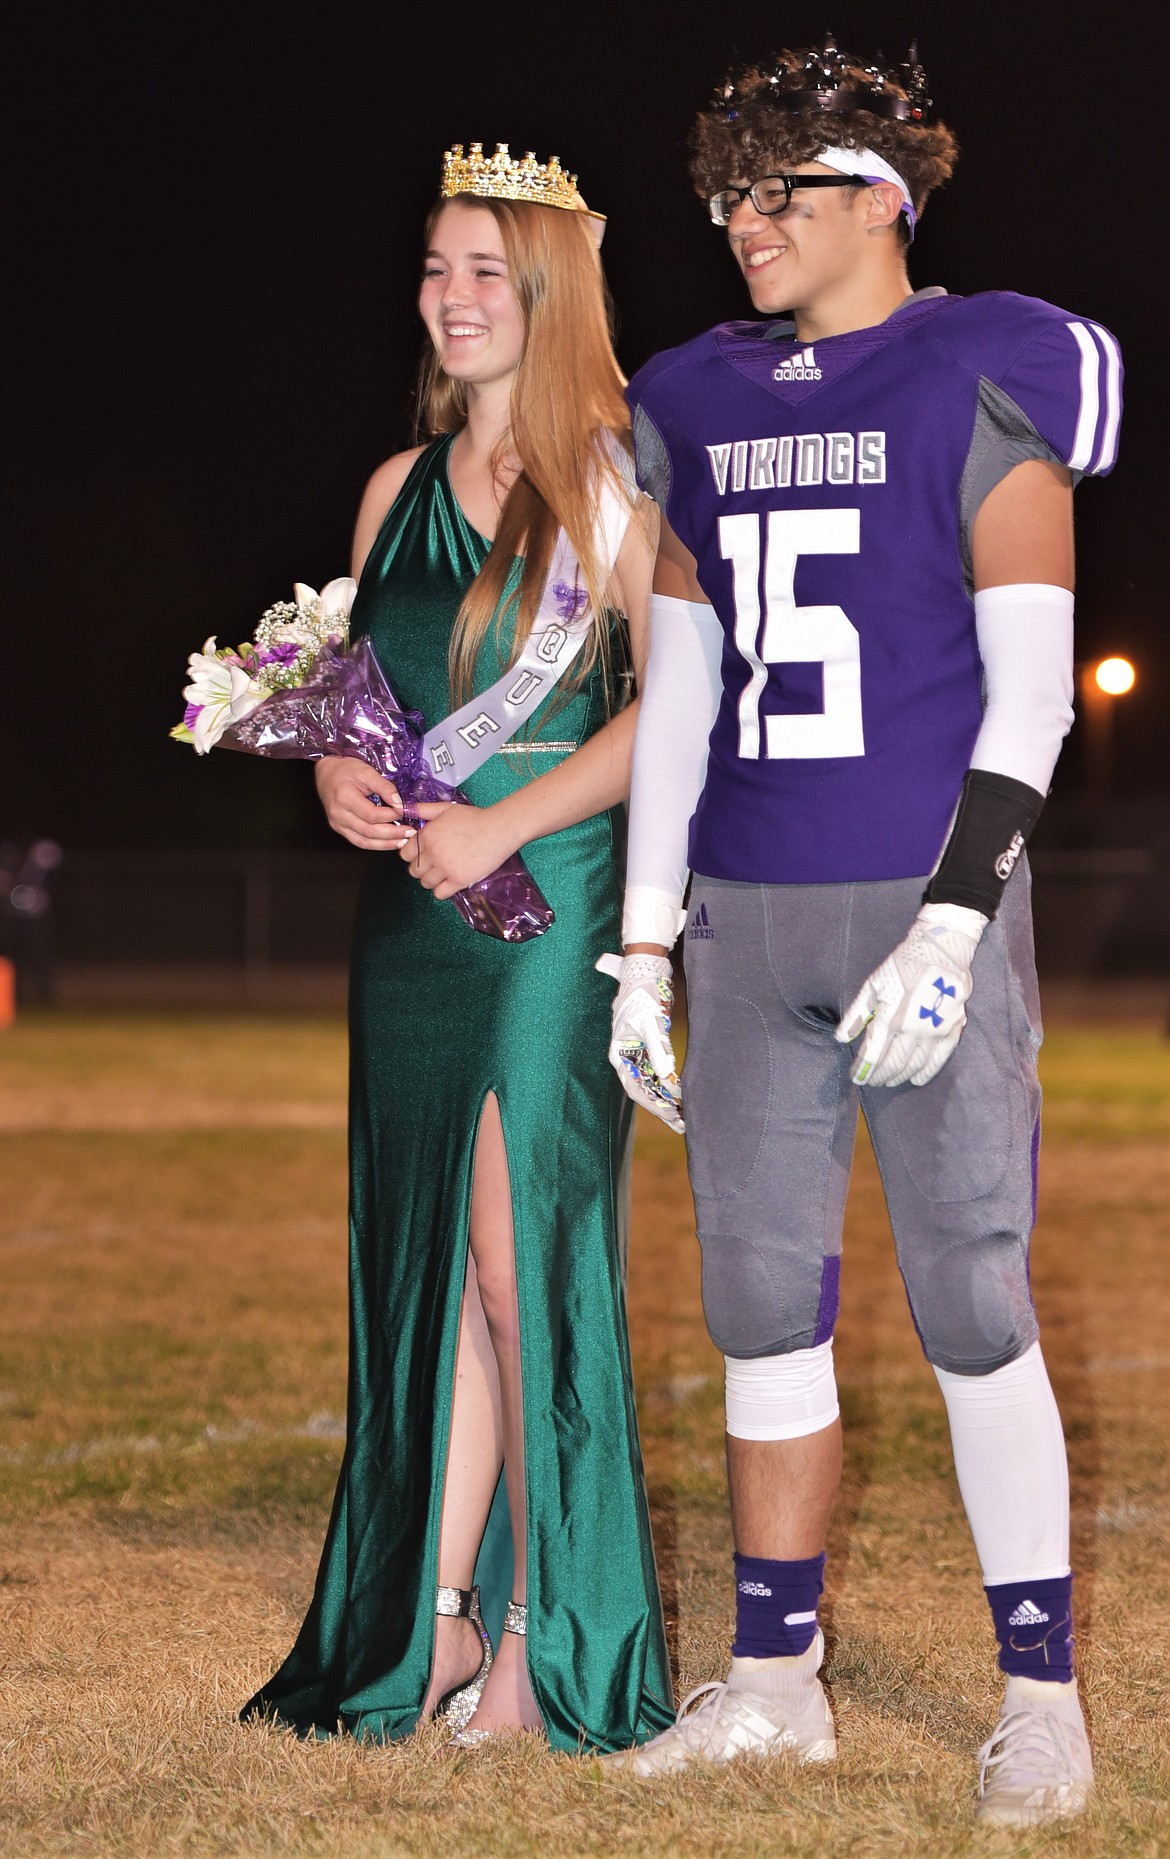 Charlo High School 2020 Homecoming Queen Aryal Love and King Phil Marquez. (Scot Heisel/Lake County Leader)